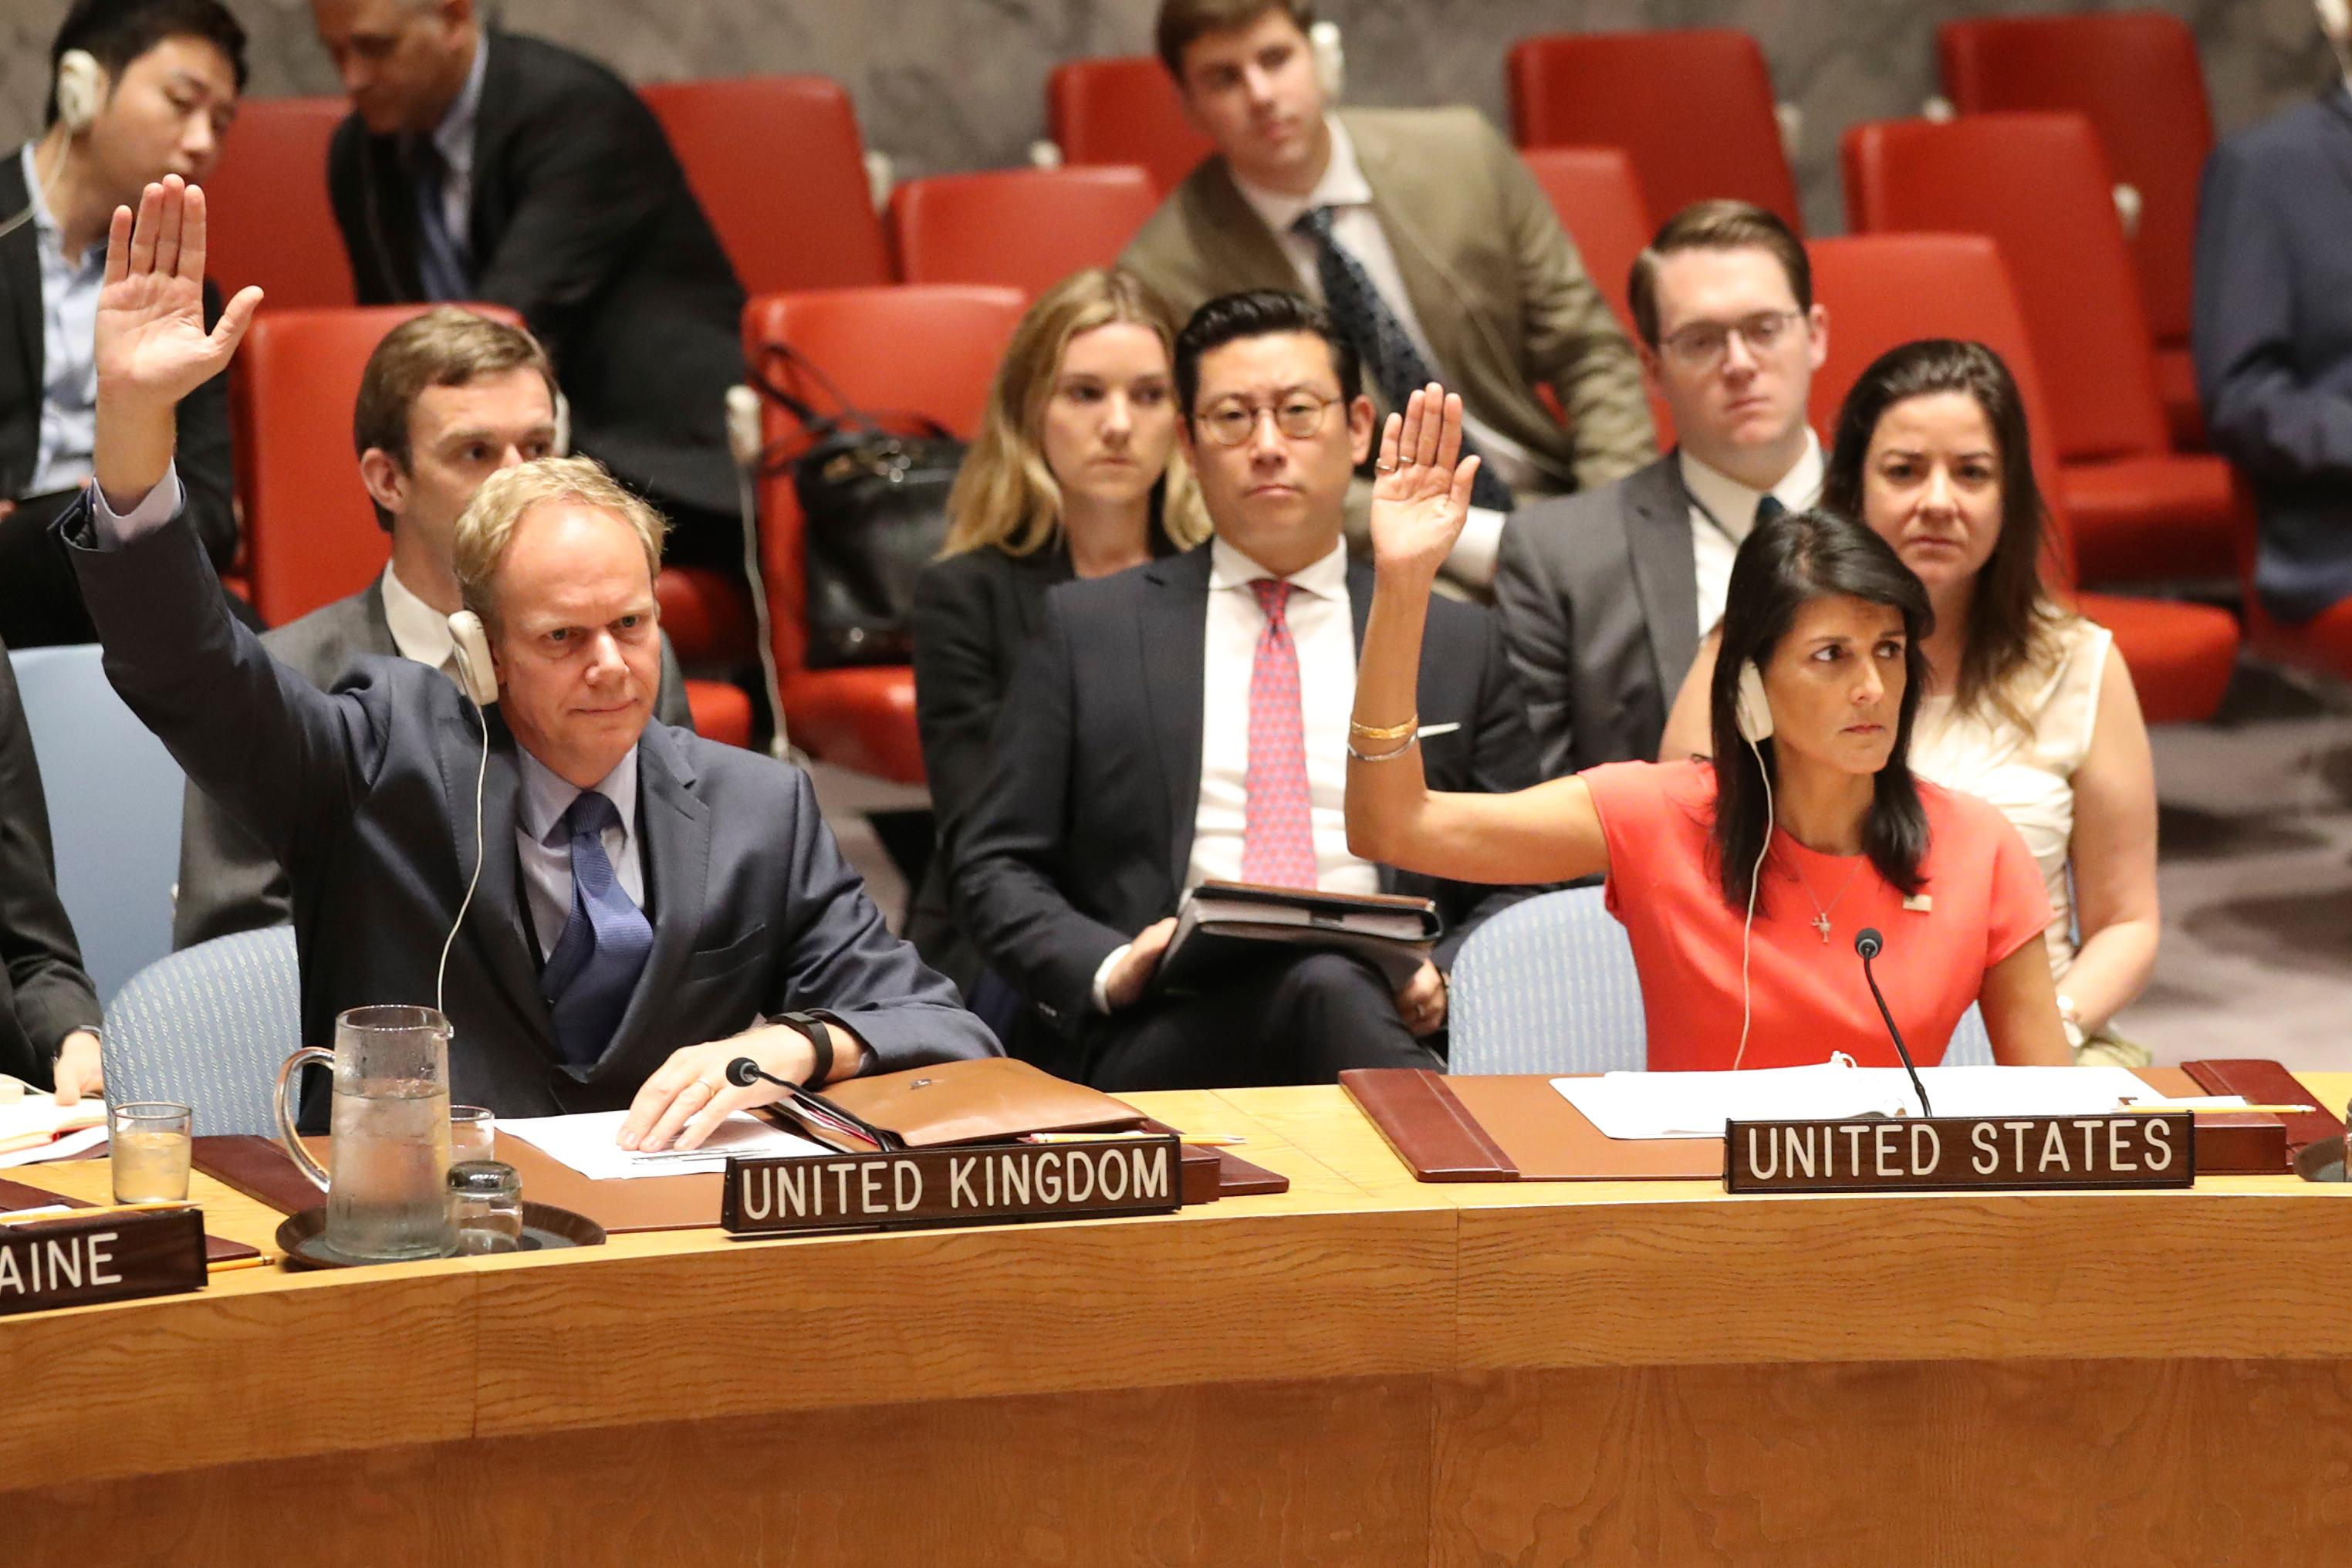 British Ambassador to the United Nations Matthew Rycroft, left, and U.S. Ambassador to the United Nations Nikki Haley vote during a Security Council meeting on a new sanctions resolution that would increase economic pressure on North Korea to return to negotiations on its missile program, Saturday, Aug. 5, 2017 at U.N. headquarters. (AP Photo/Mary Altaffer)